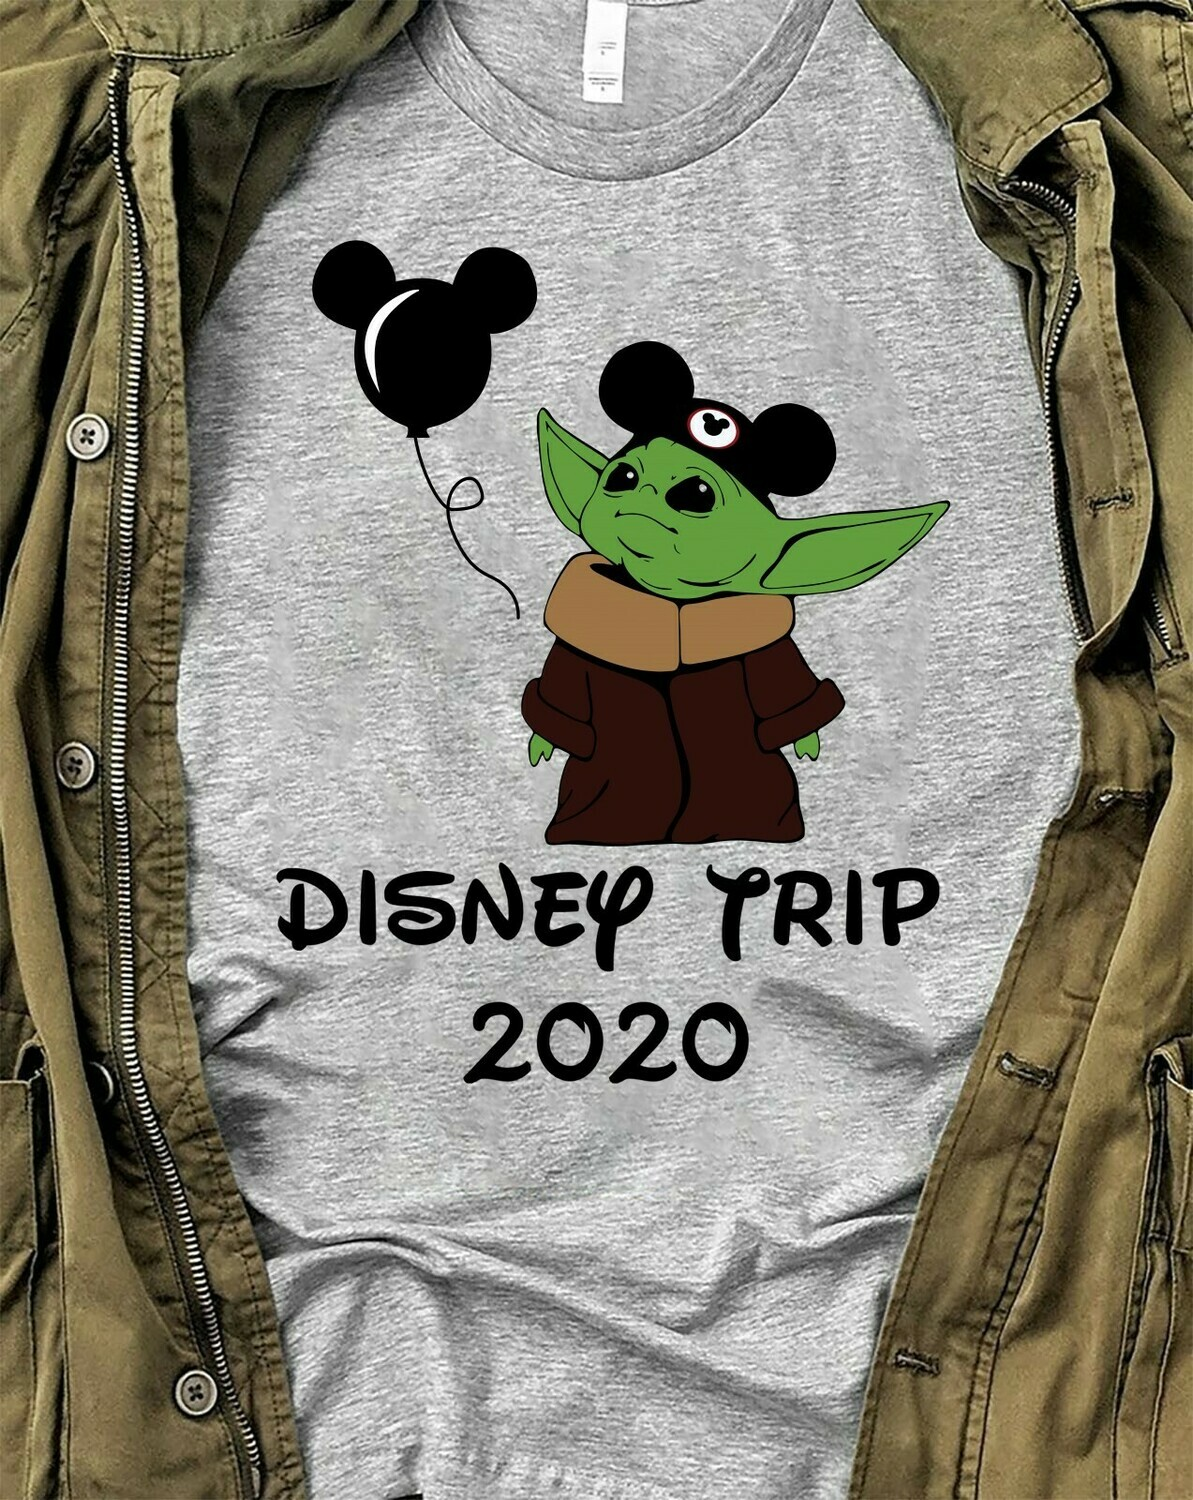 Disney Trip 2020 Baby Yoda Mickey Disney The Mandalorian With Death Star Wars Movie Walt Disney Vacation Family Go to Disney World  T-Shirt Hoodie Sweatshirt Sweater Tee Kids Youth Gifts Jolly Family